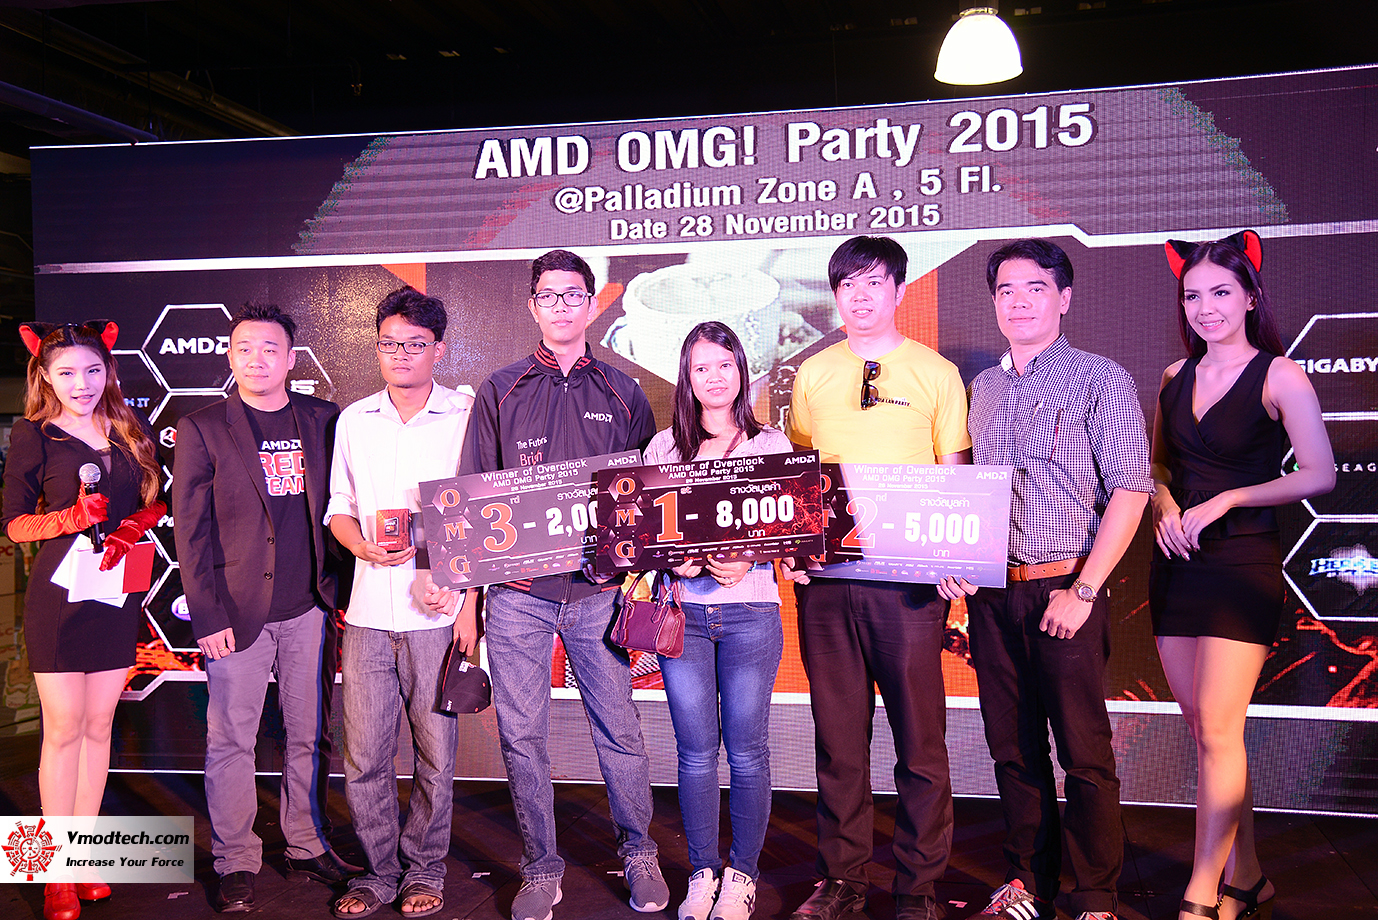 dsc 7936 AMD OMG! Party 2015 (AMD Overclock Modding Gaming Party 2015)